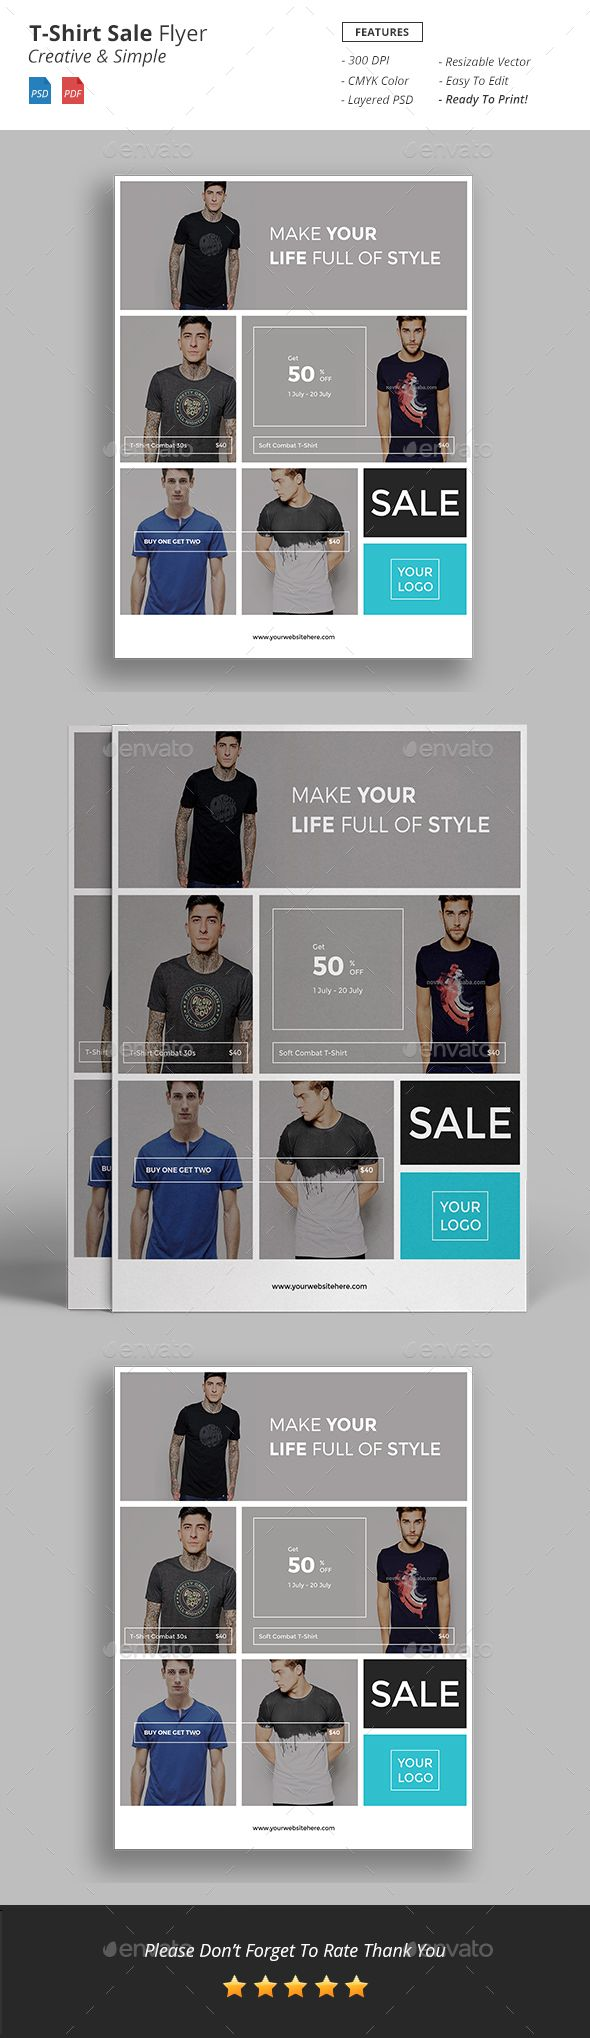 T Shirt Sale Flyer Is Totally Creative Corporate Flyer It S Very Recommended To Use For Company Promotion To Describe Your Compa Sale Flyer Tshirt Sale Flyer